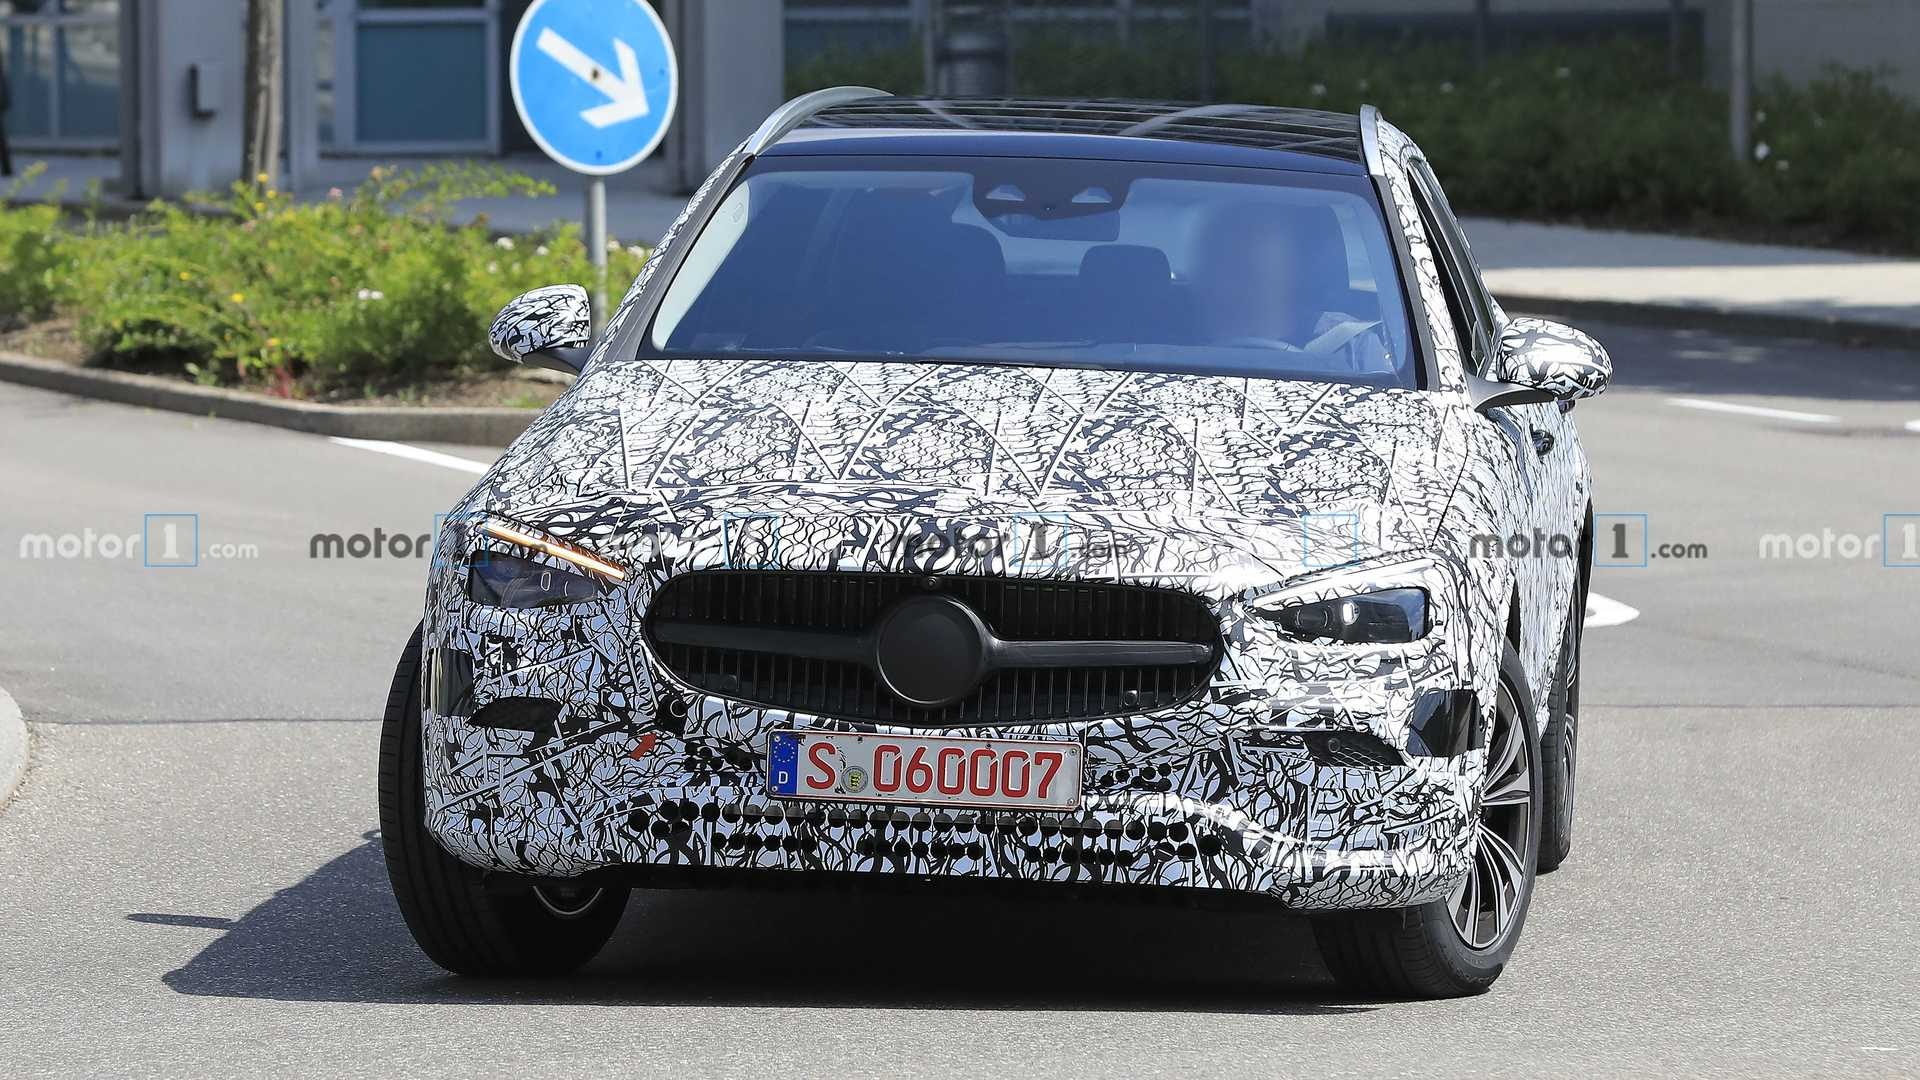 2021-mercedes-c-class-estate-spy-photo-u